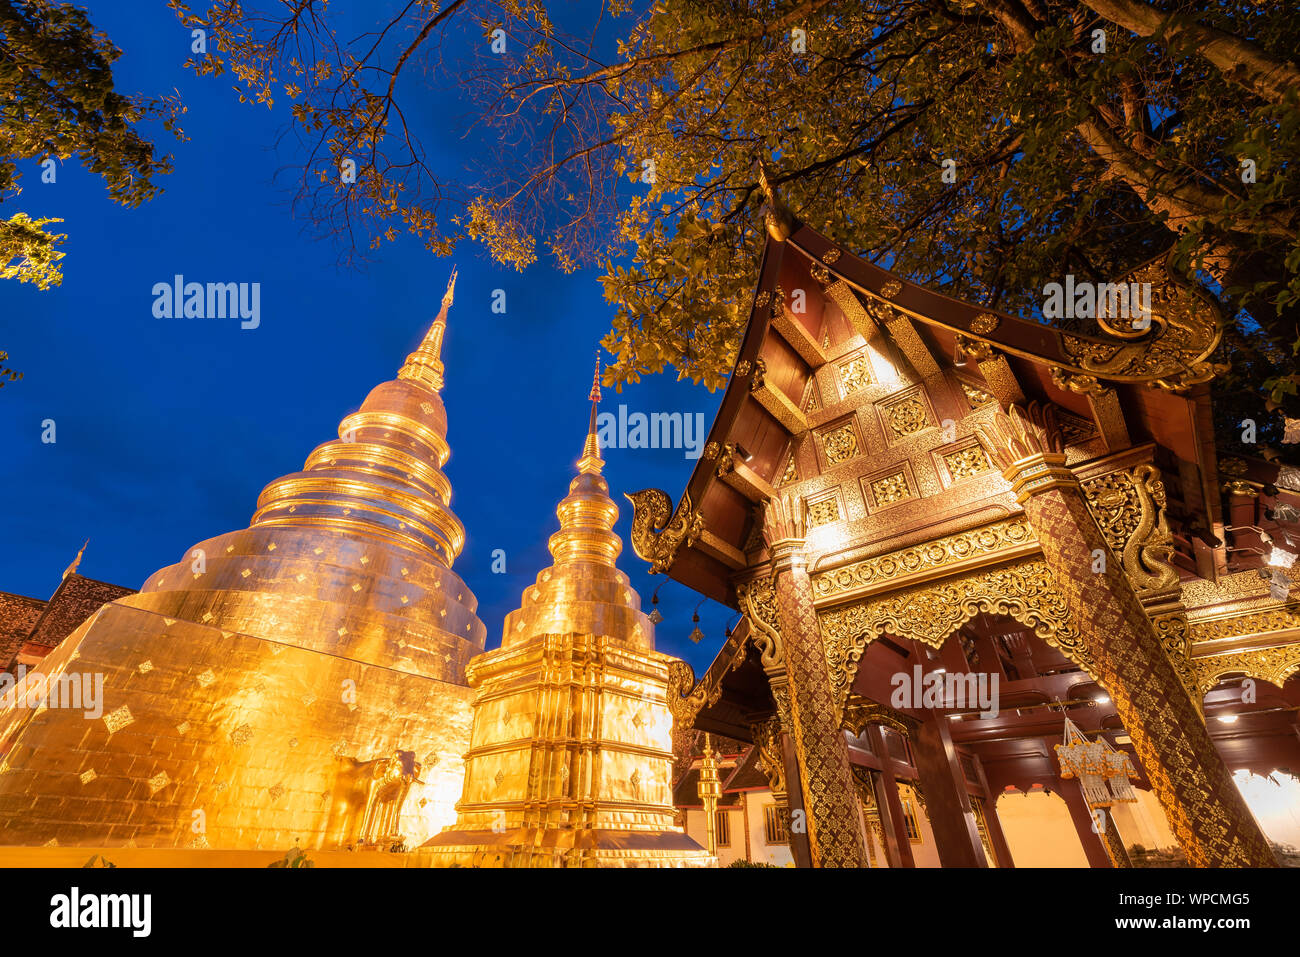 Golden pagoda in blue night sky. Phra Singh temple. Chiang Mai, Thailand. Stock Photo